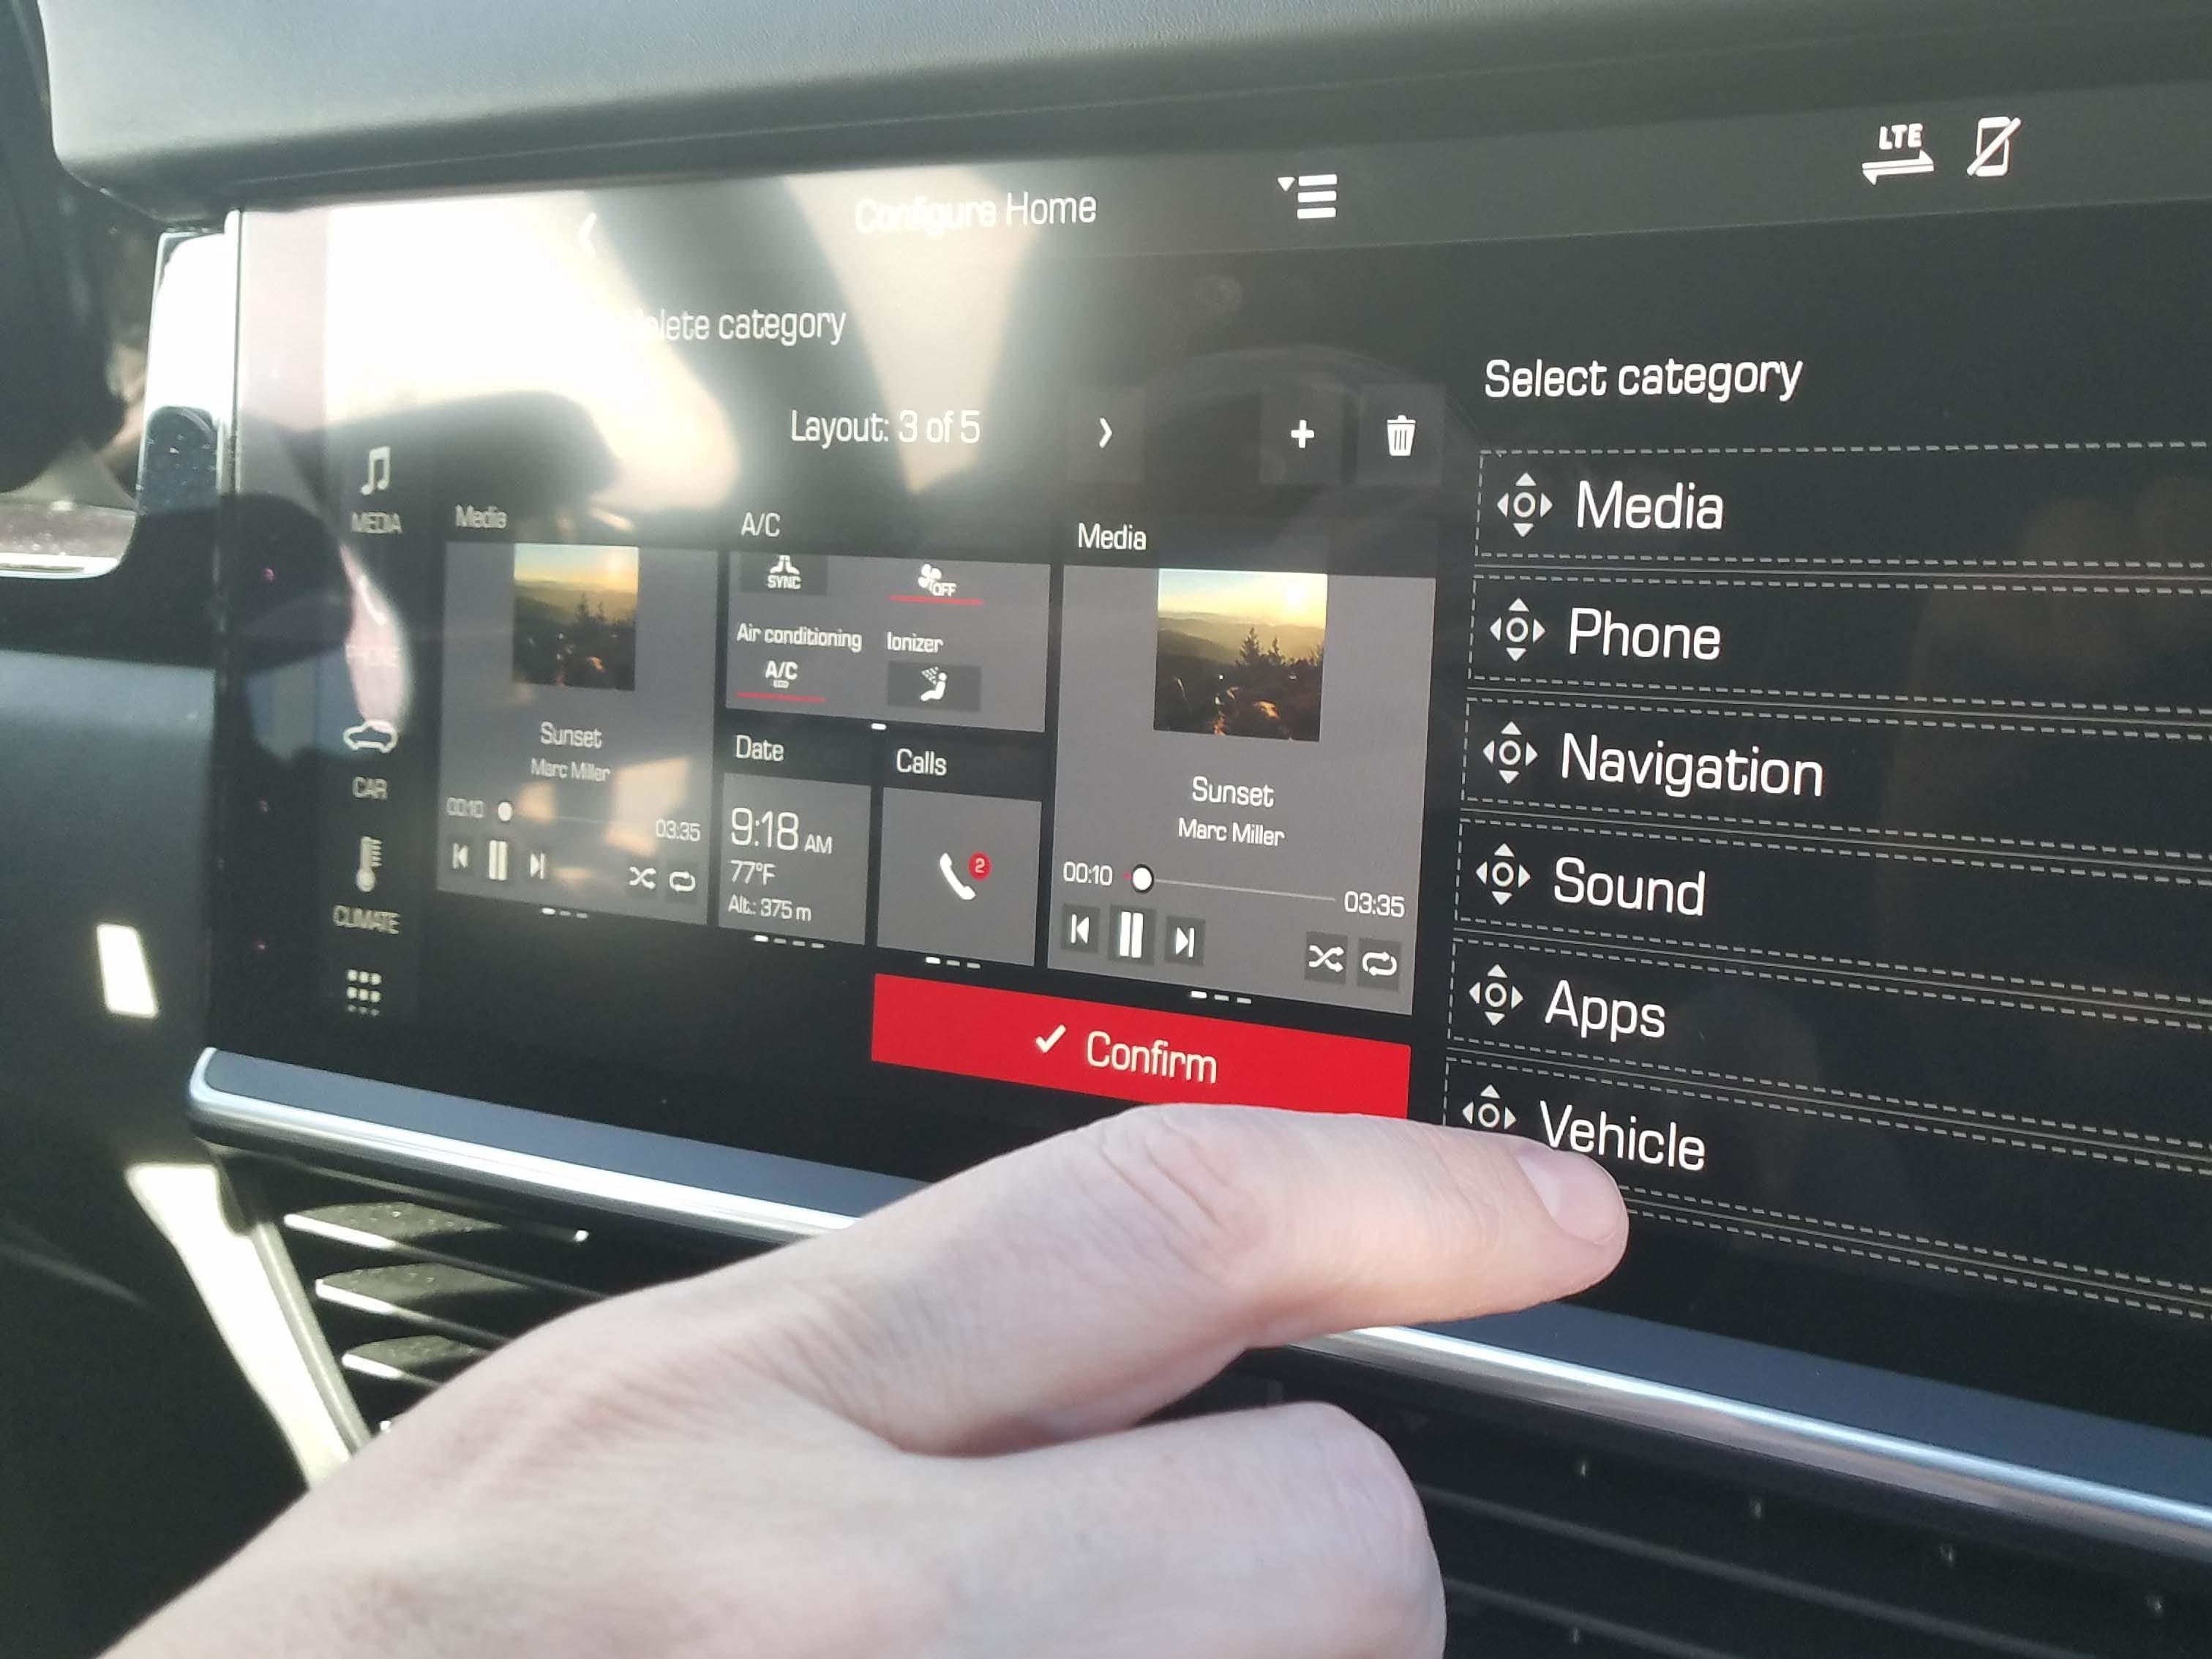 The 2019 Cayenne features a much-improved infotainment system that can be configured multiple ways — and features a wealth of information.